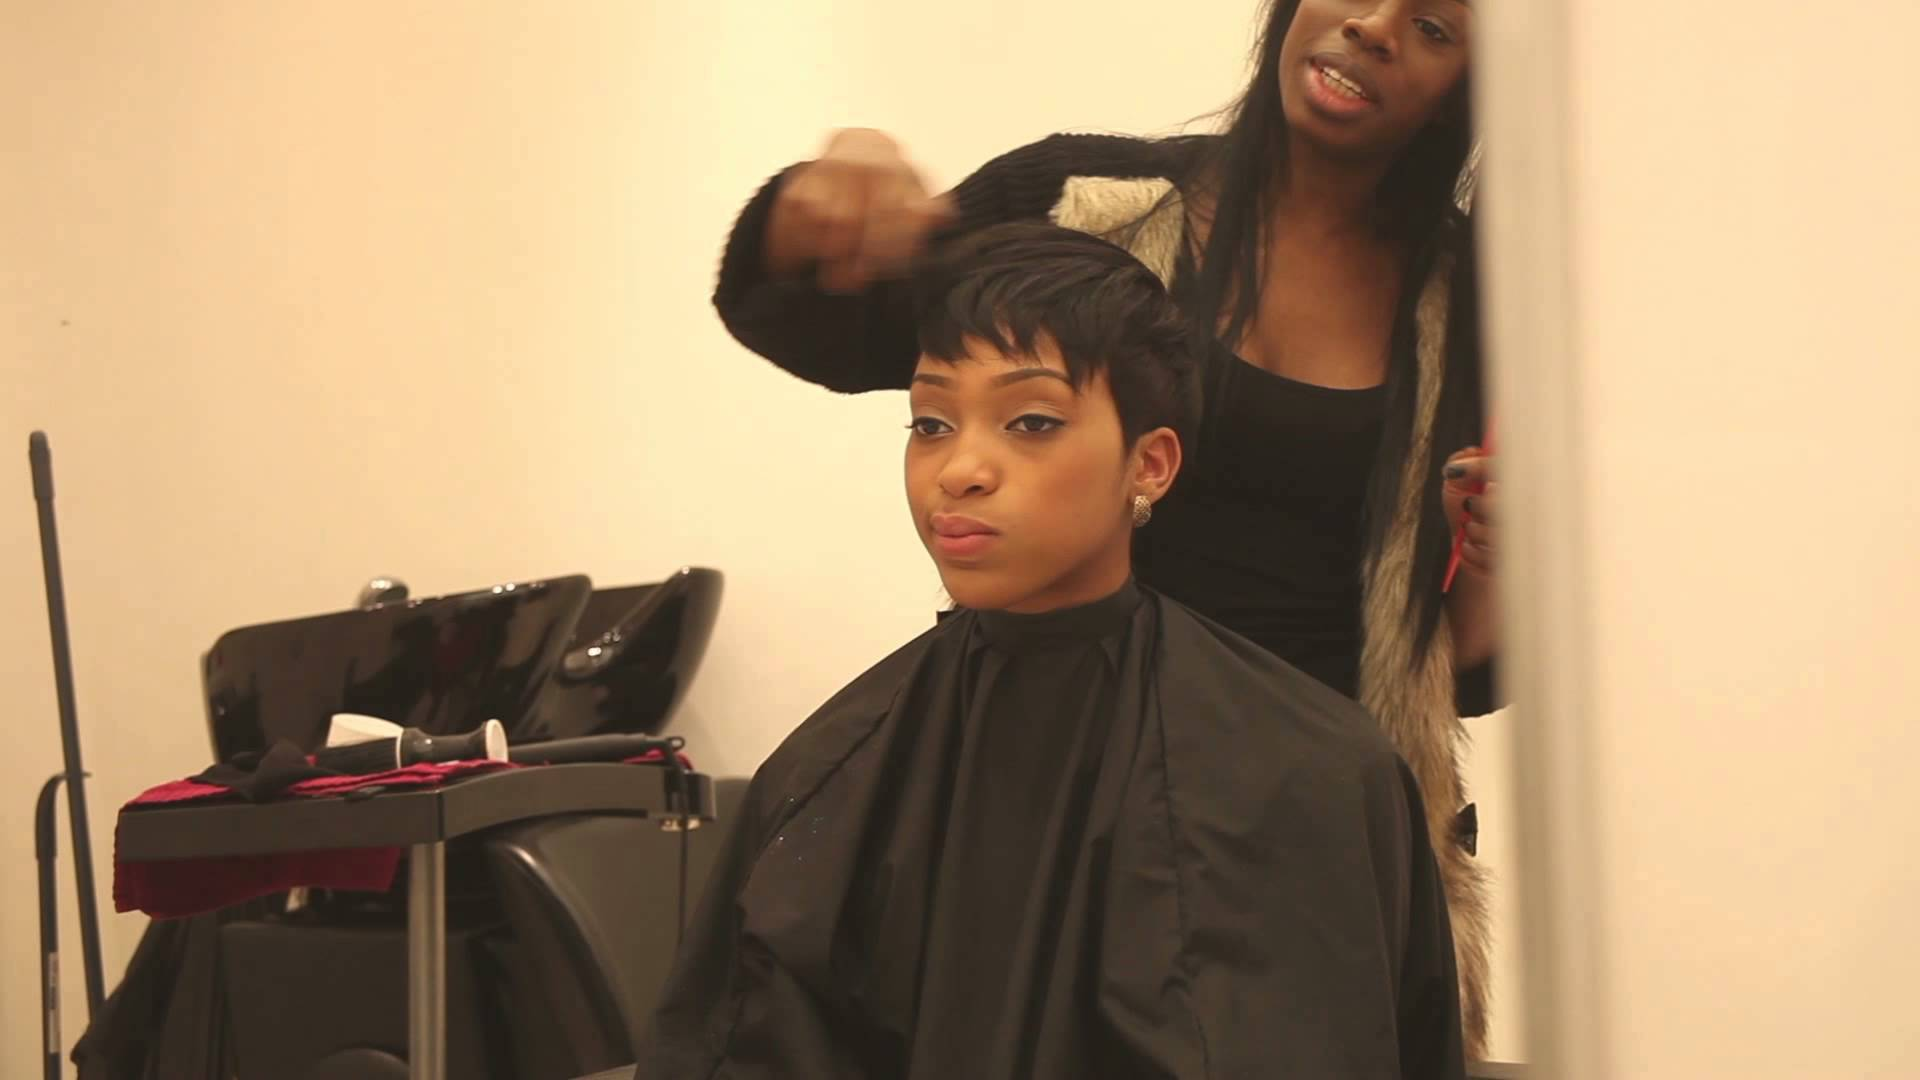 Best 30 Mobile Afro-Hair Hairdressers In London